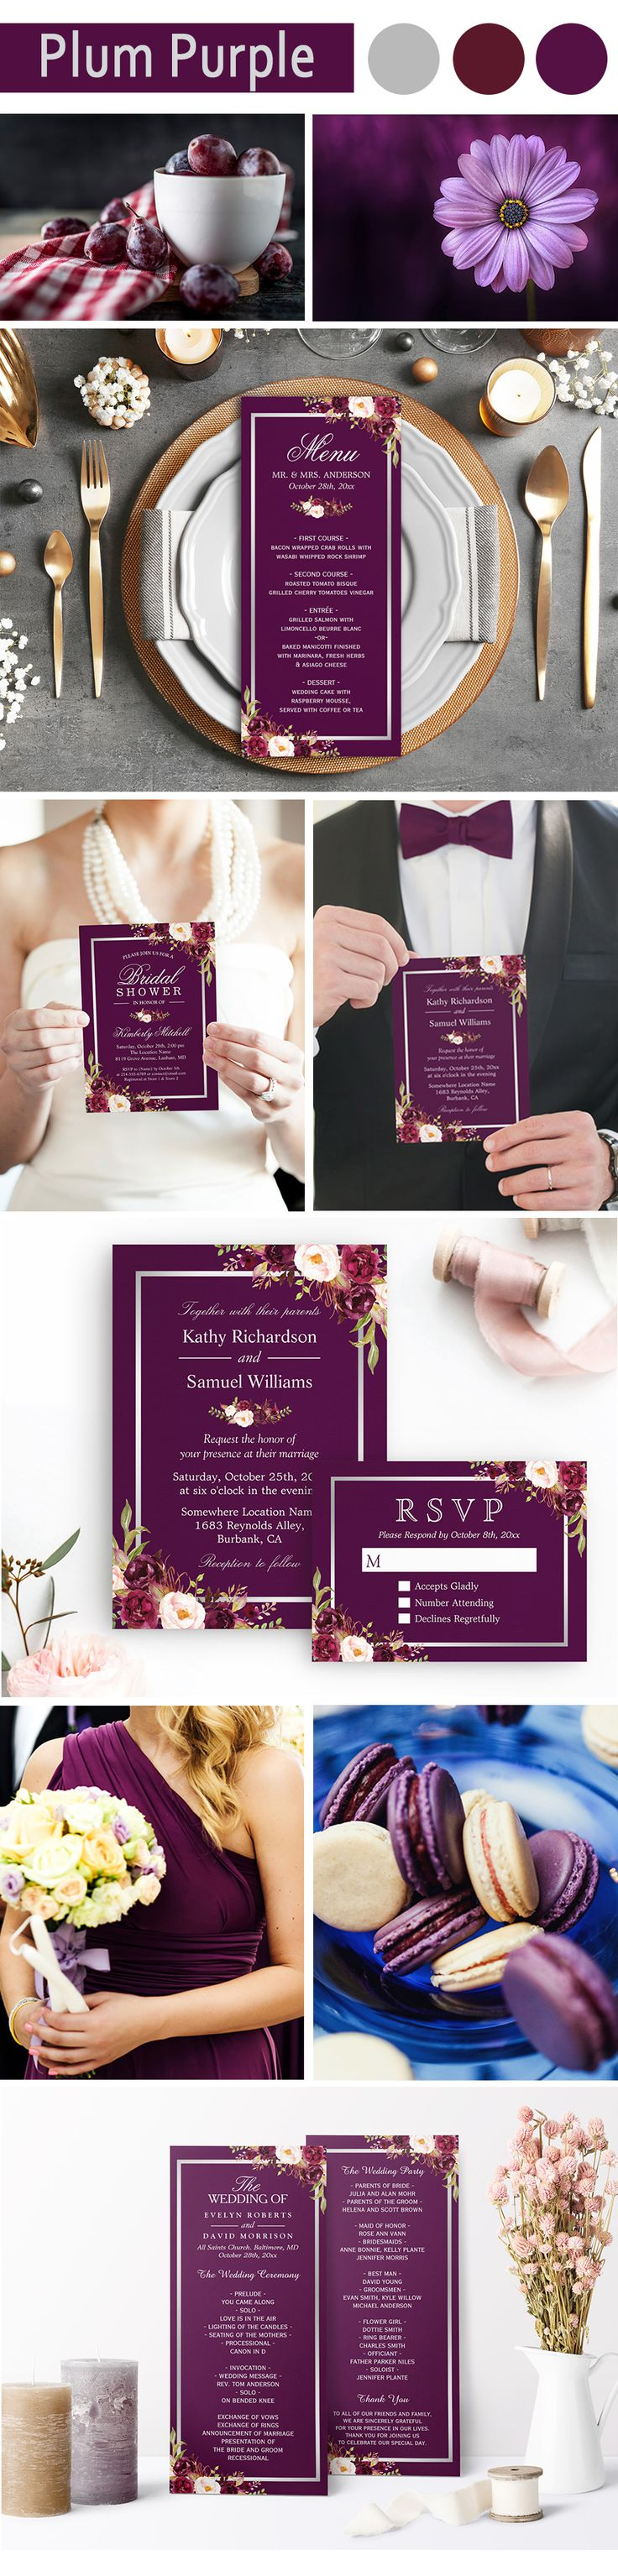 A Plum Purple Floral Silver Gray Invitation